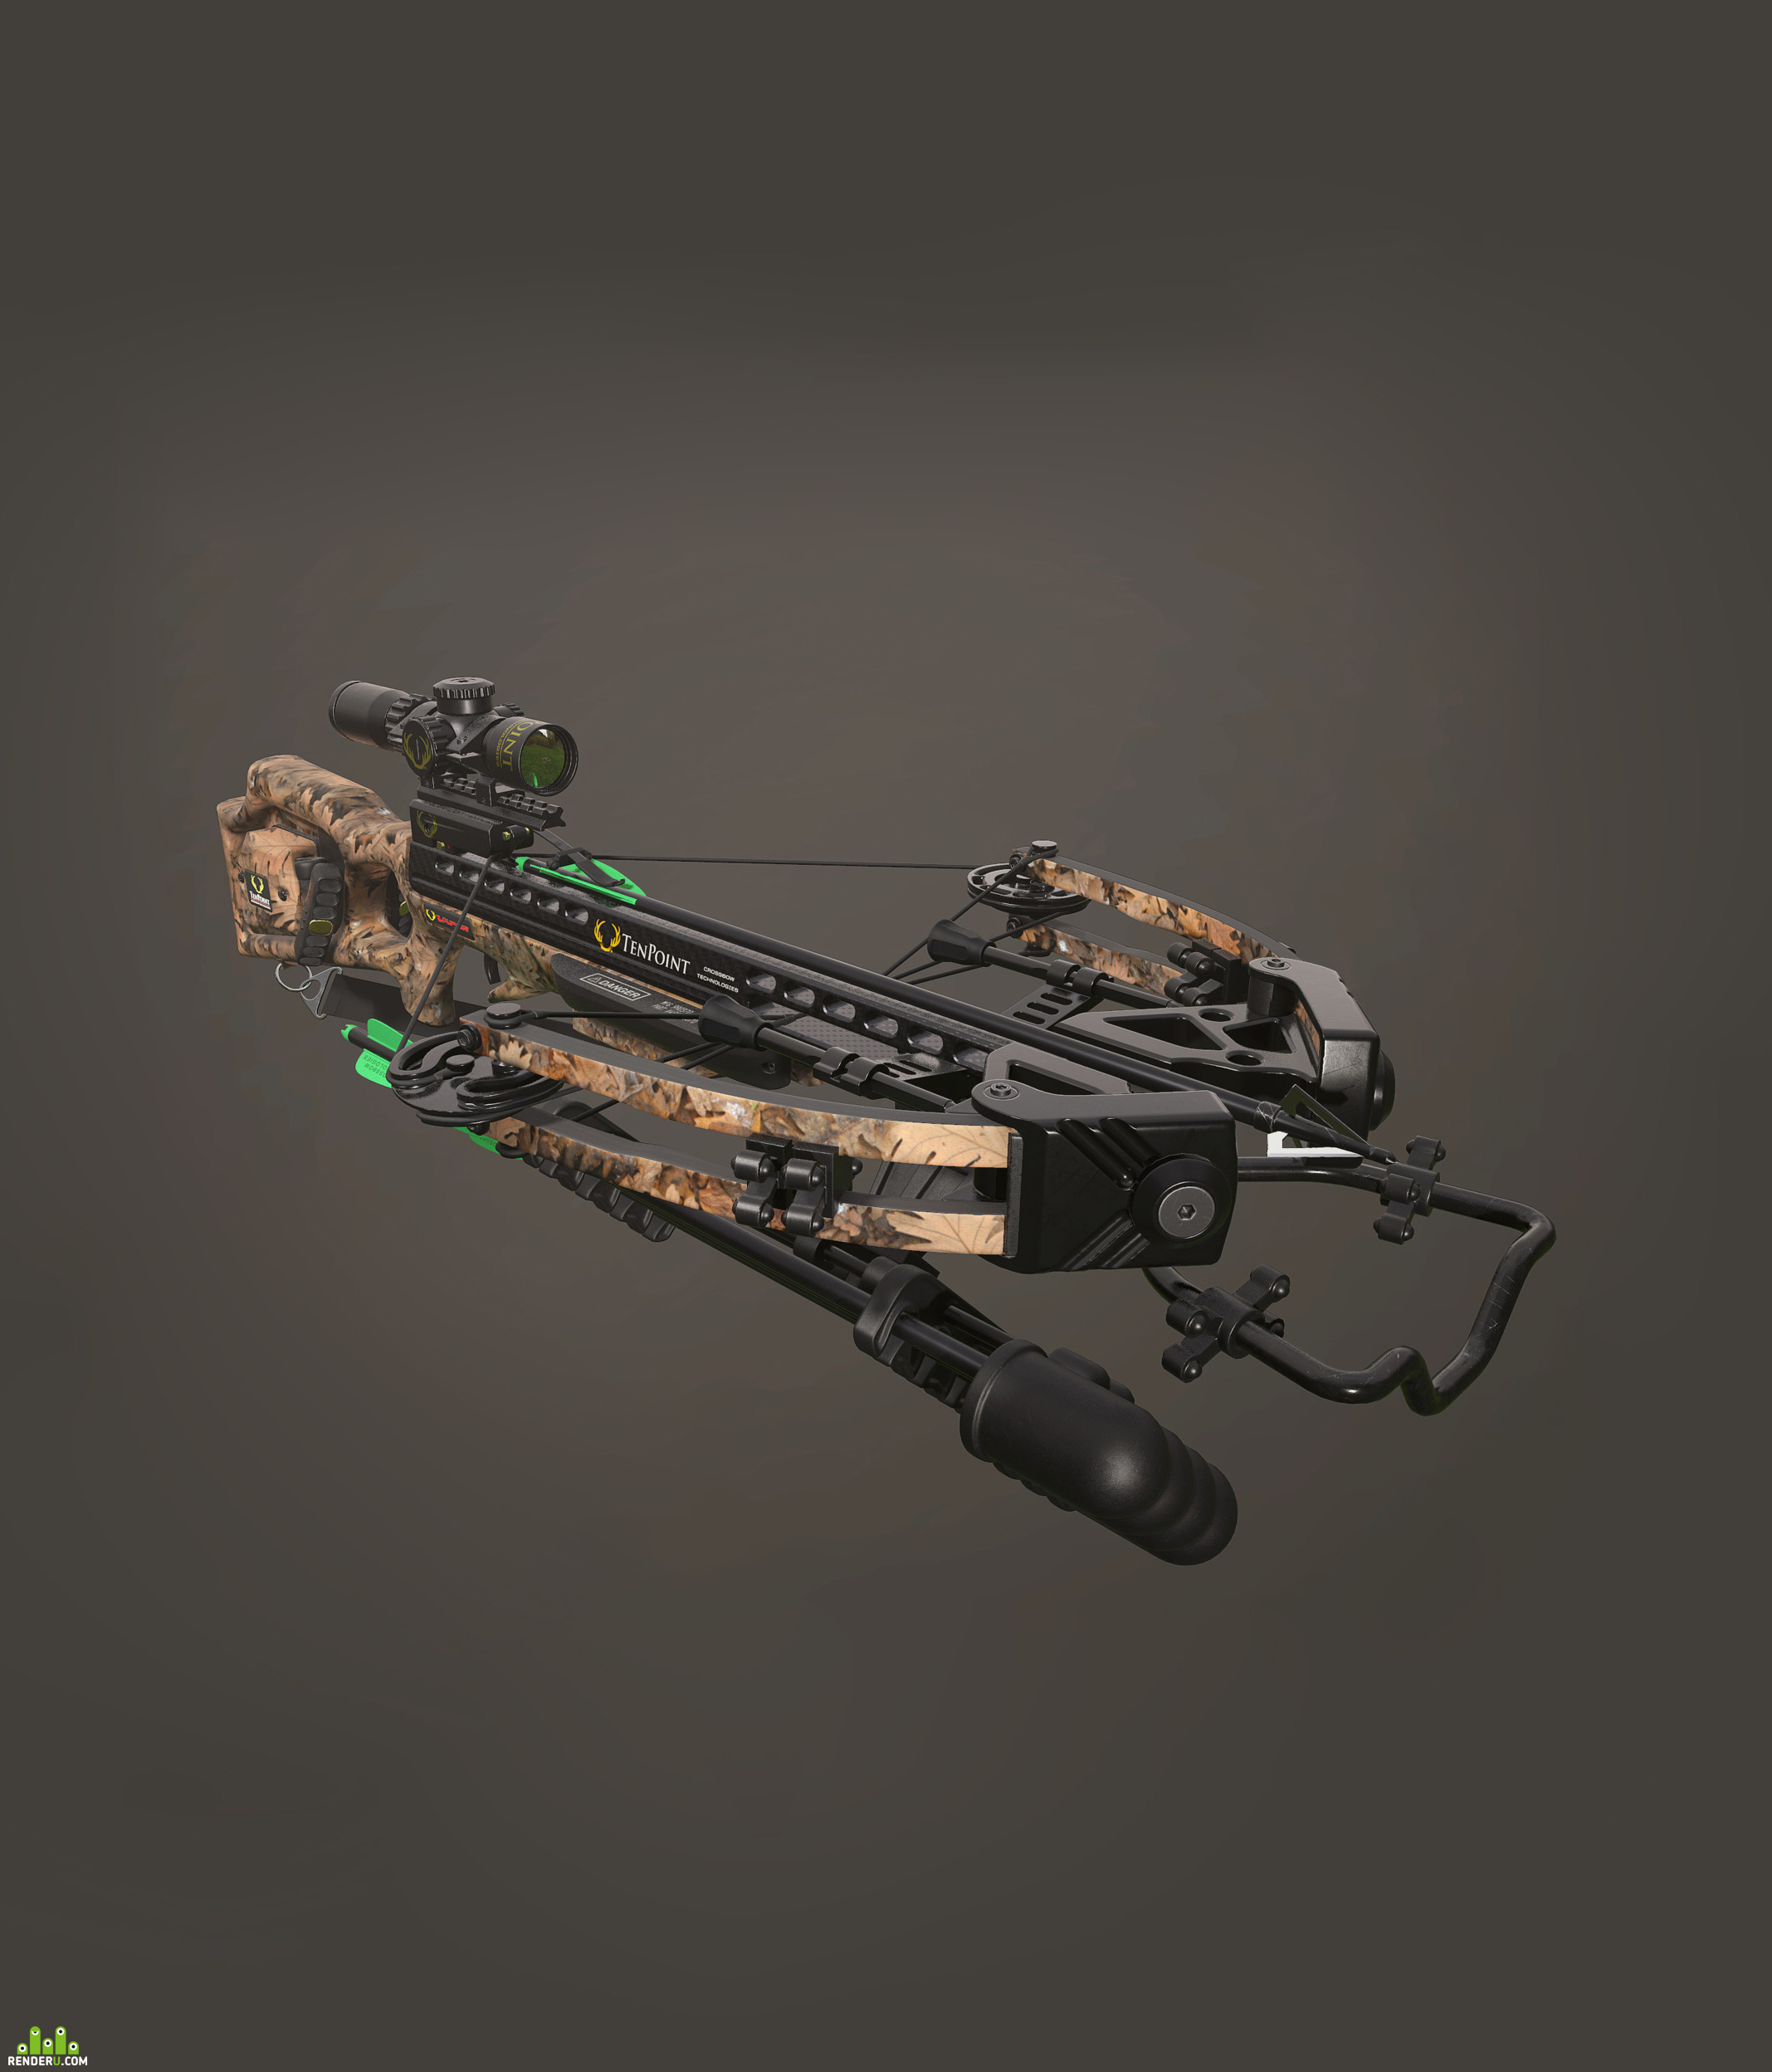 preview CROSSBOW - hunting edition turbo xlt series